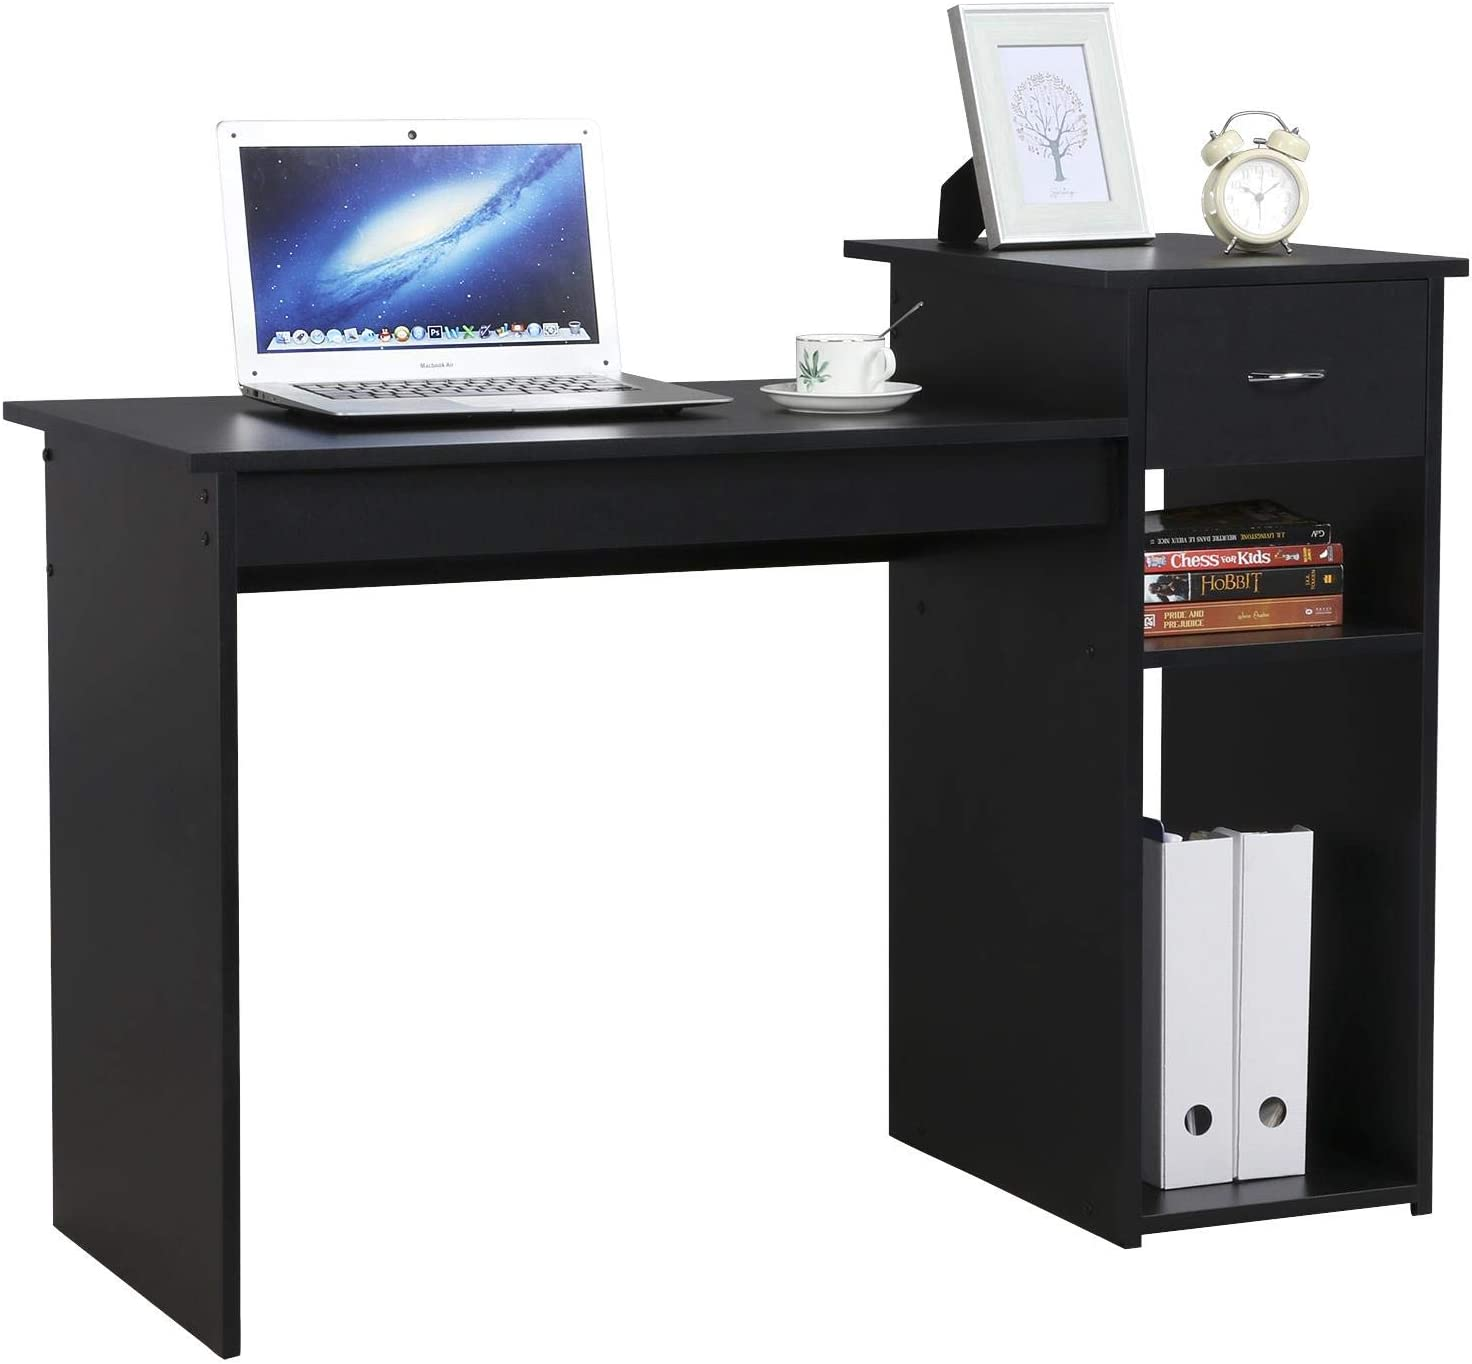 YAHEETECH Home Office Computer Desk Wooden PC Laptop Desk Study Workstation Writing Table with Storage Drawer Black